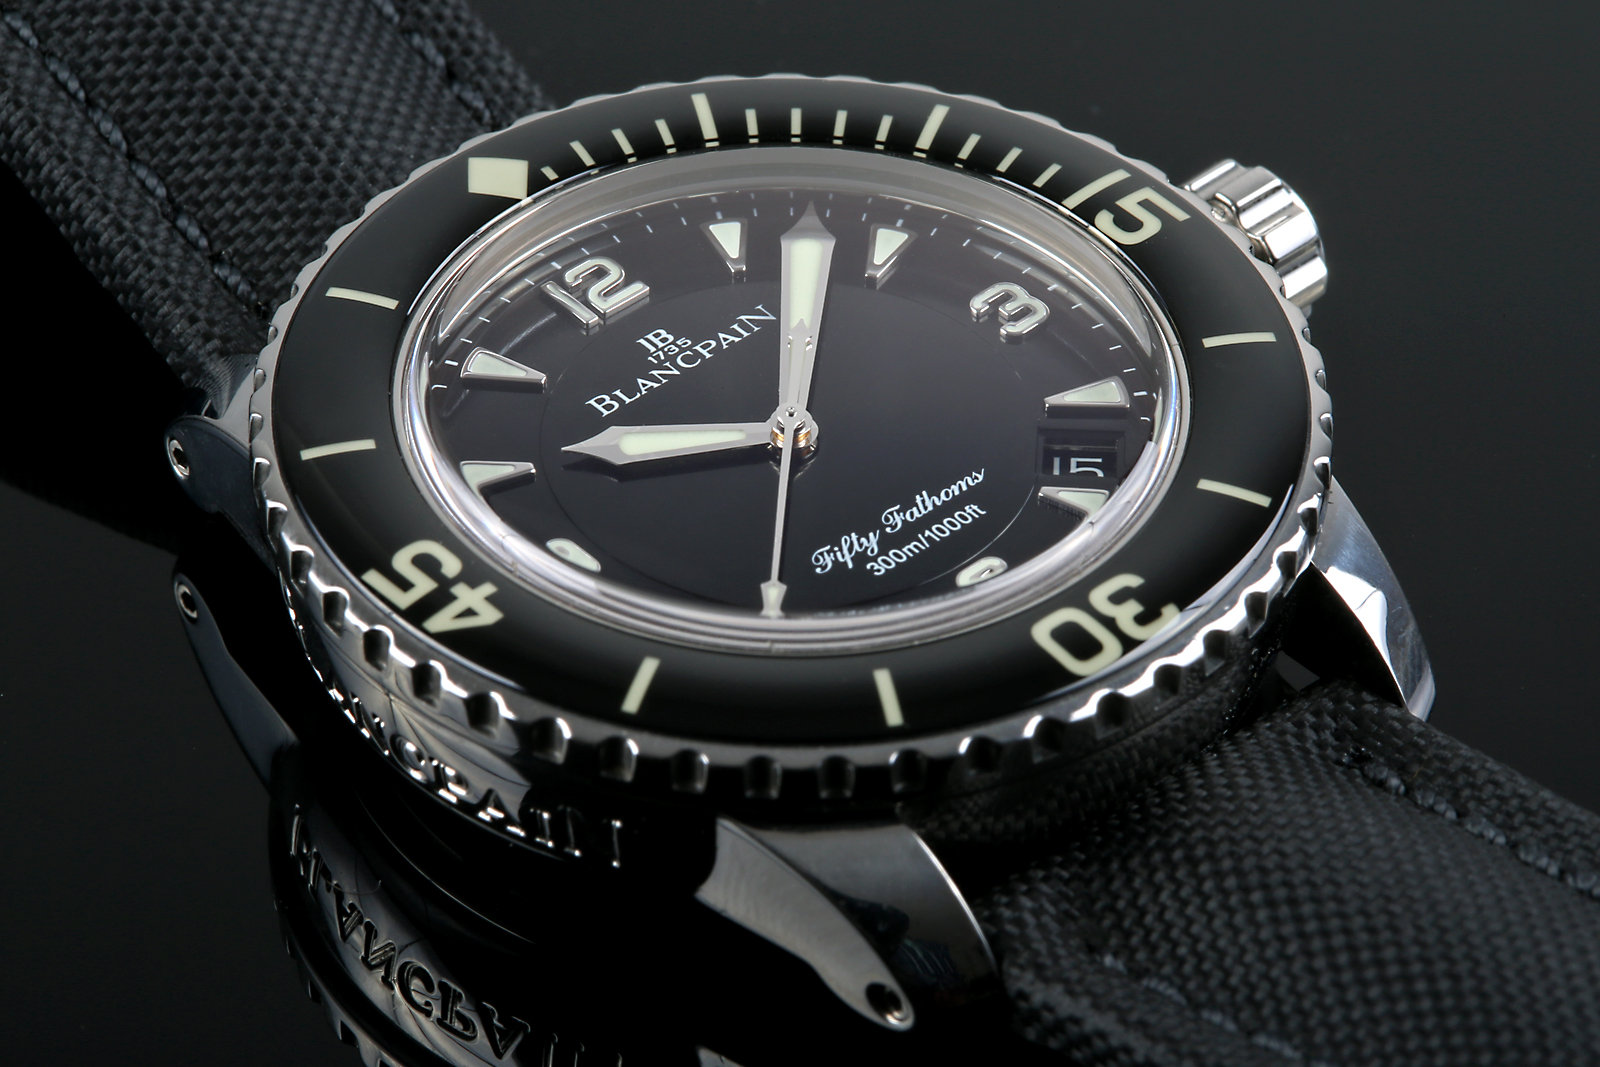 Name:  548331d1358296289-exit-watch-2-0-blancpain-fifty-fathoms-diver-ref-5015-1130-52-5.jpg